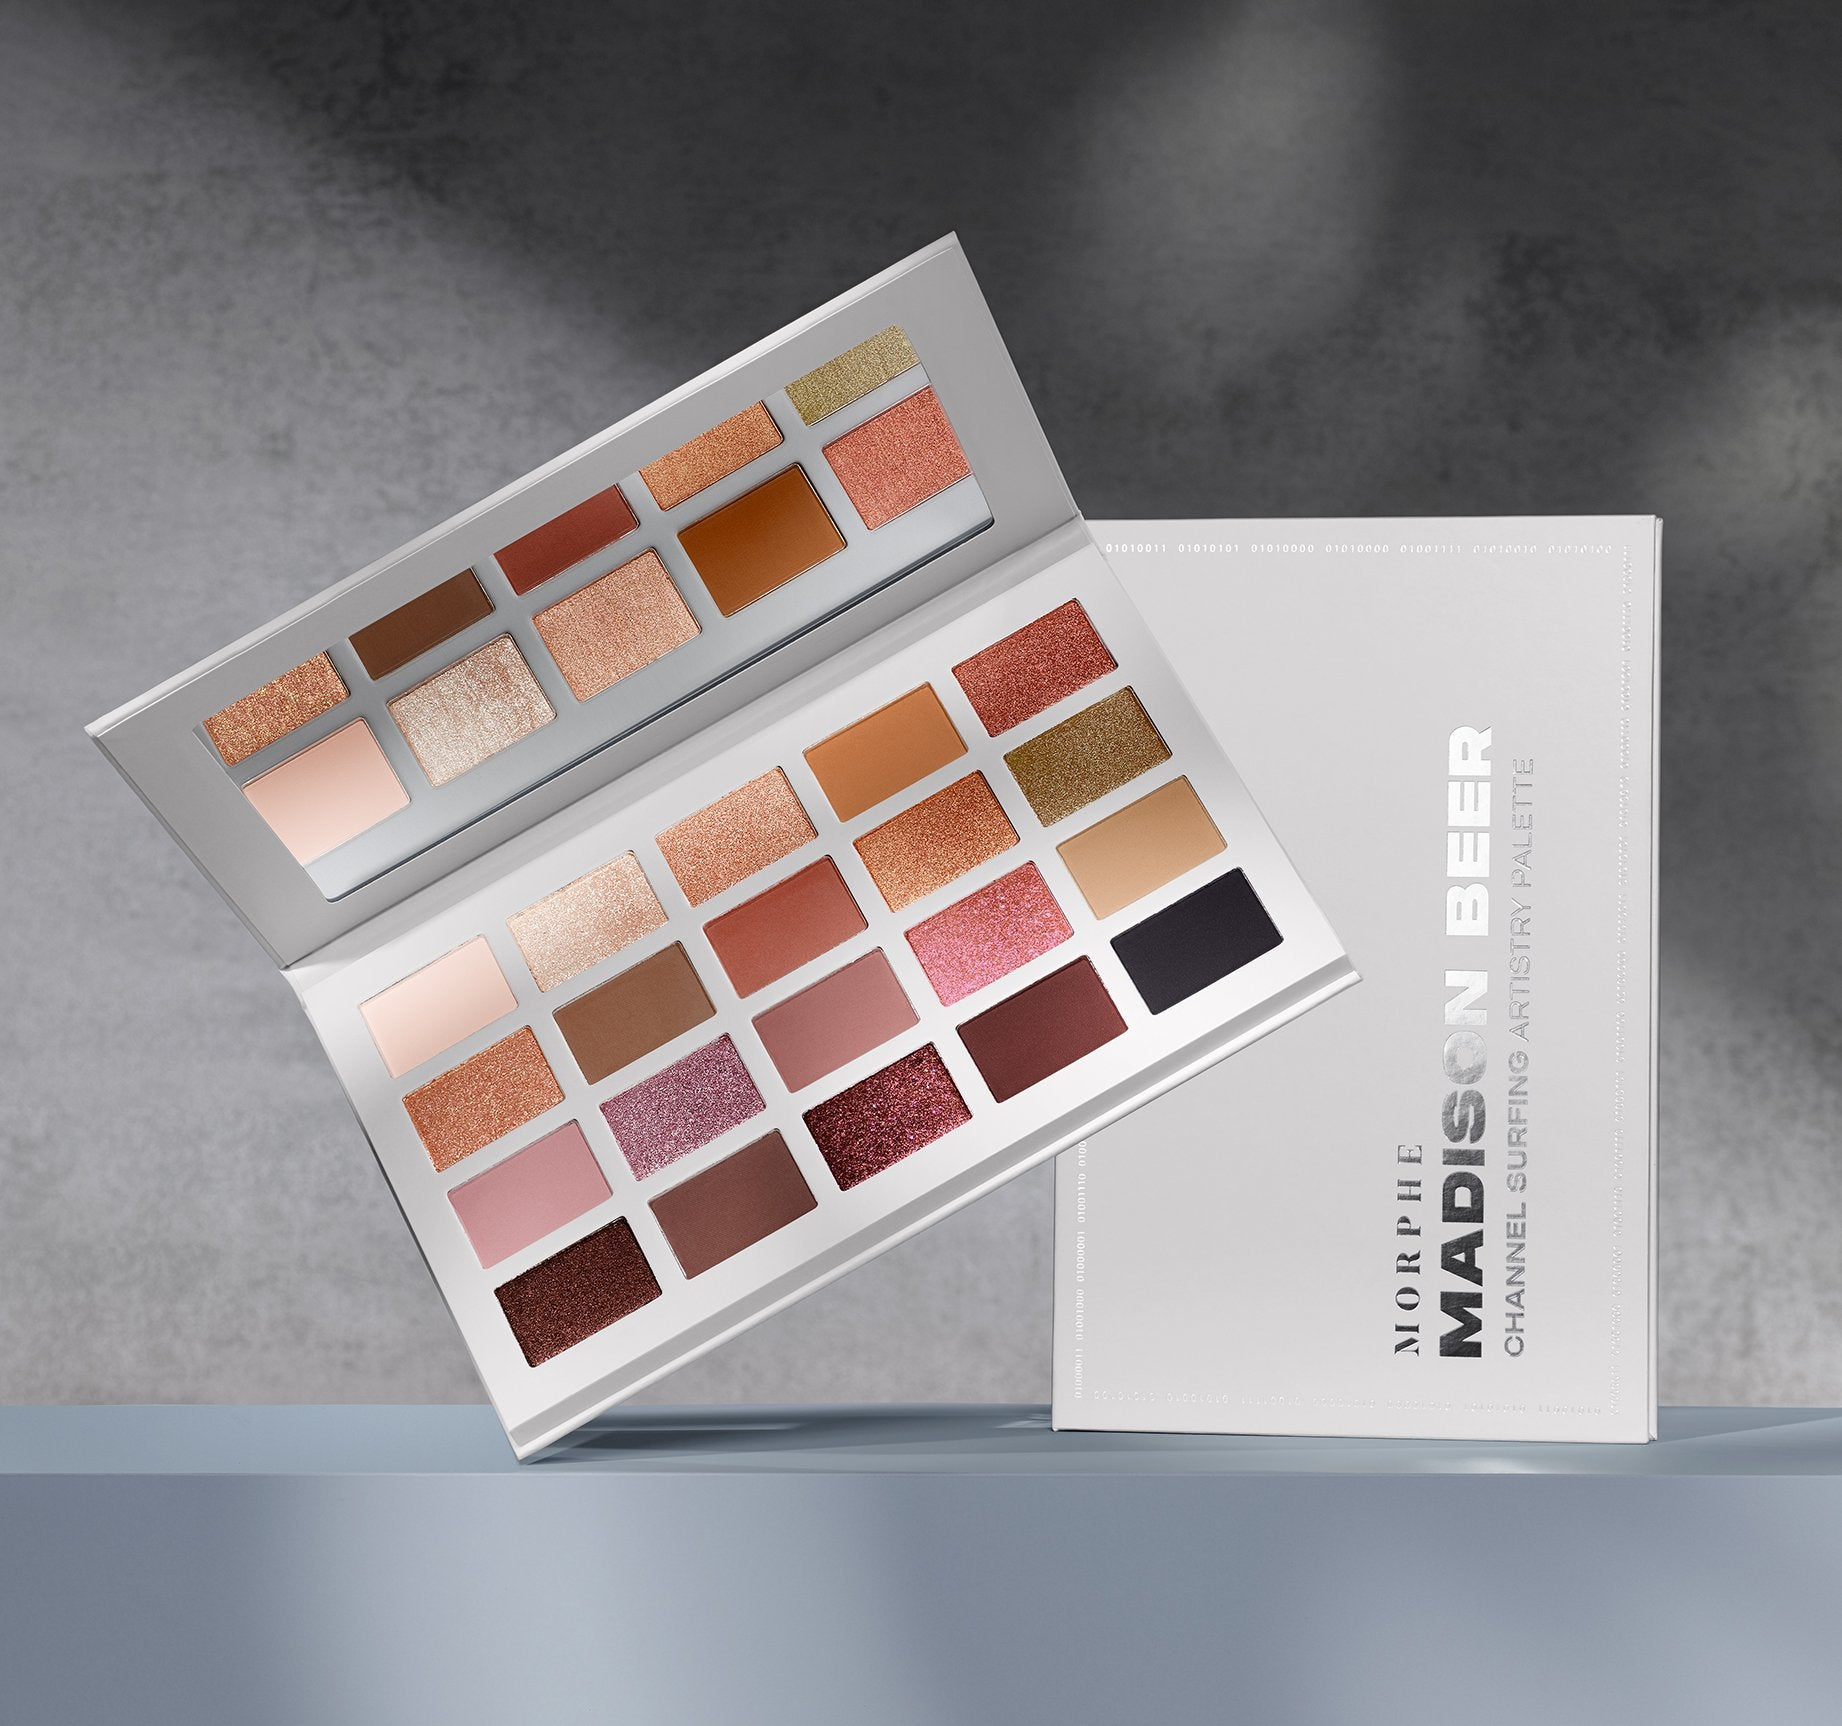 CHANNEL SURFING ARTISTRY PALETTE, view larger image